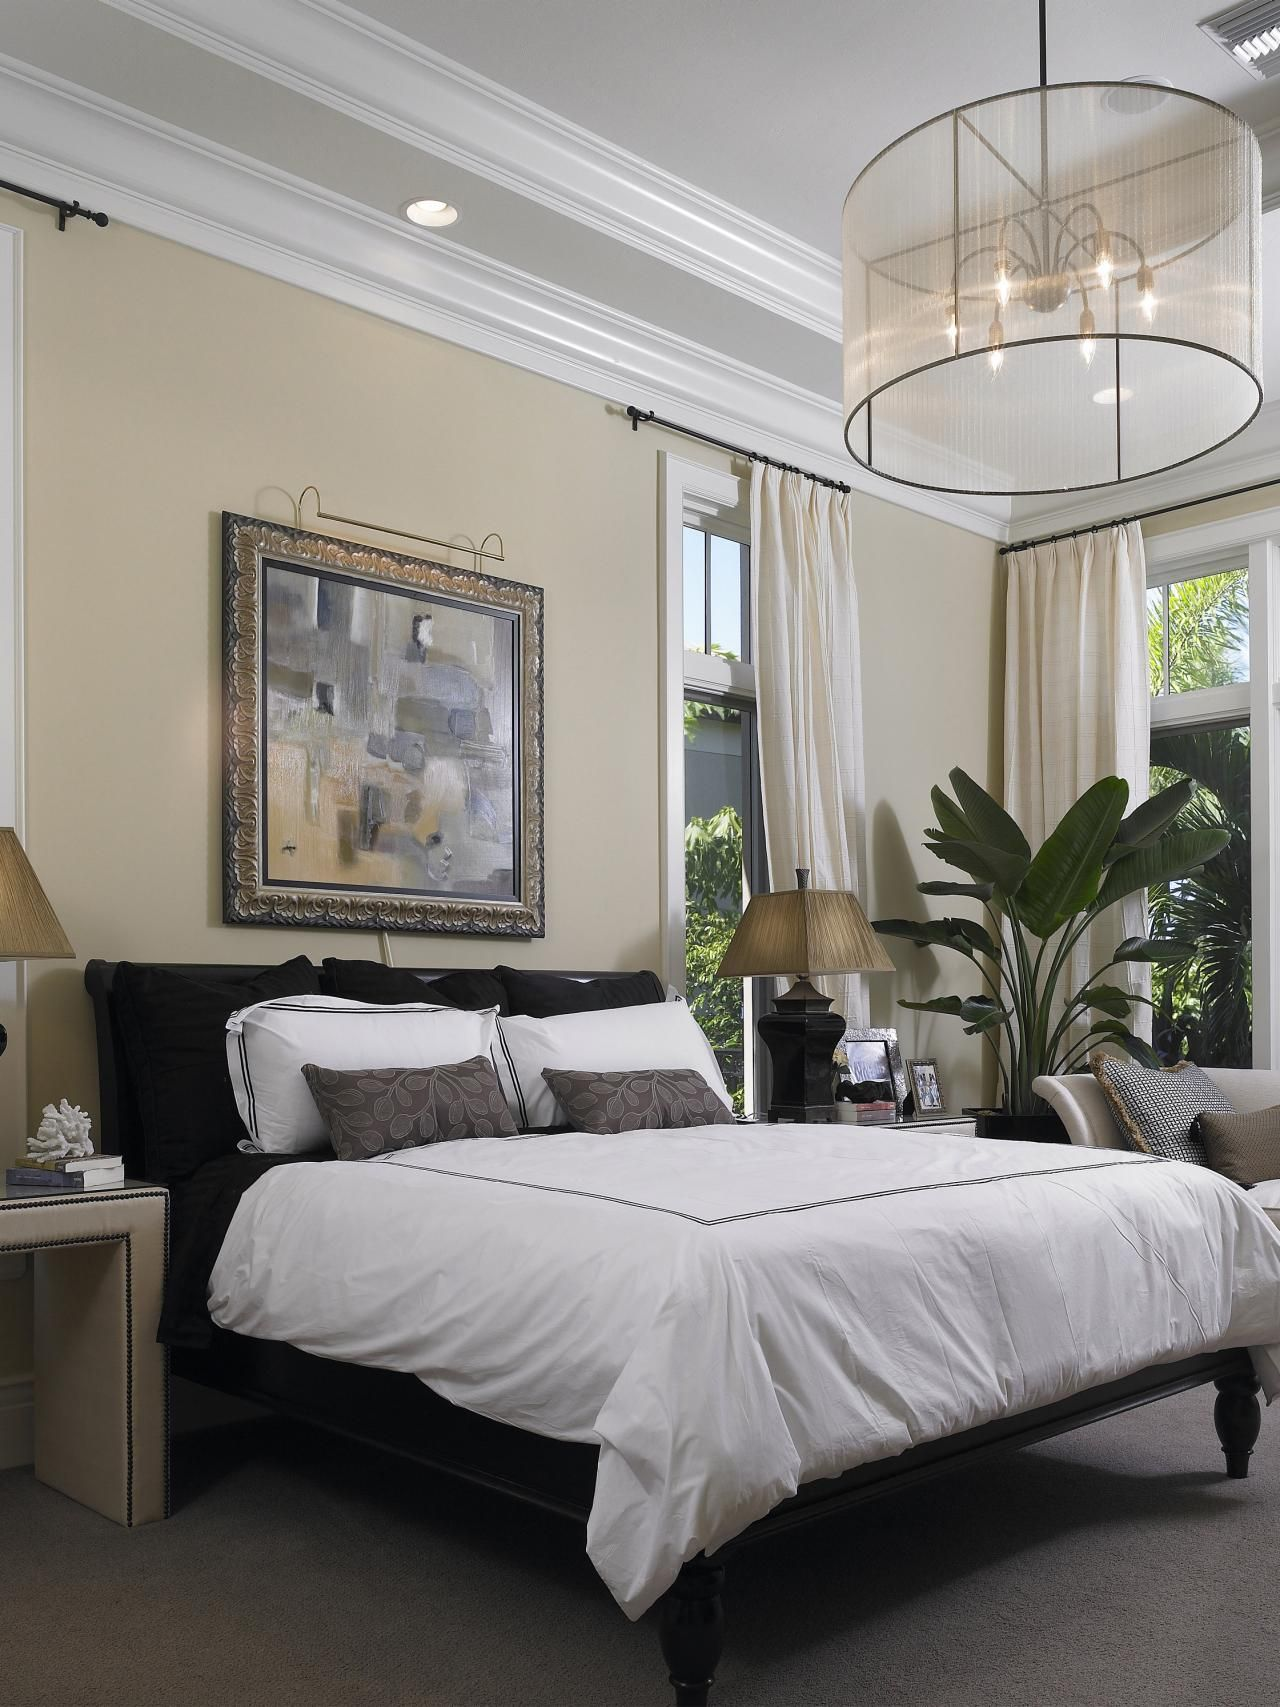 10 all-white bedroom linens | elegant chandeliers and bed skirts